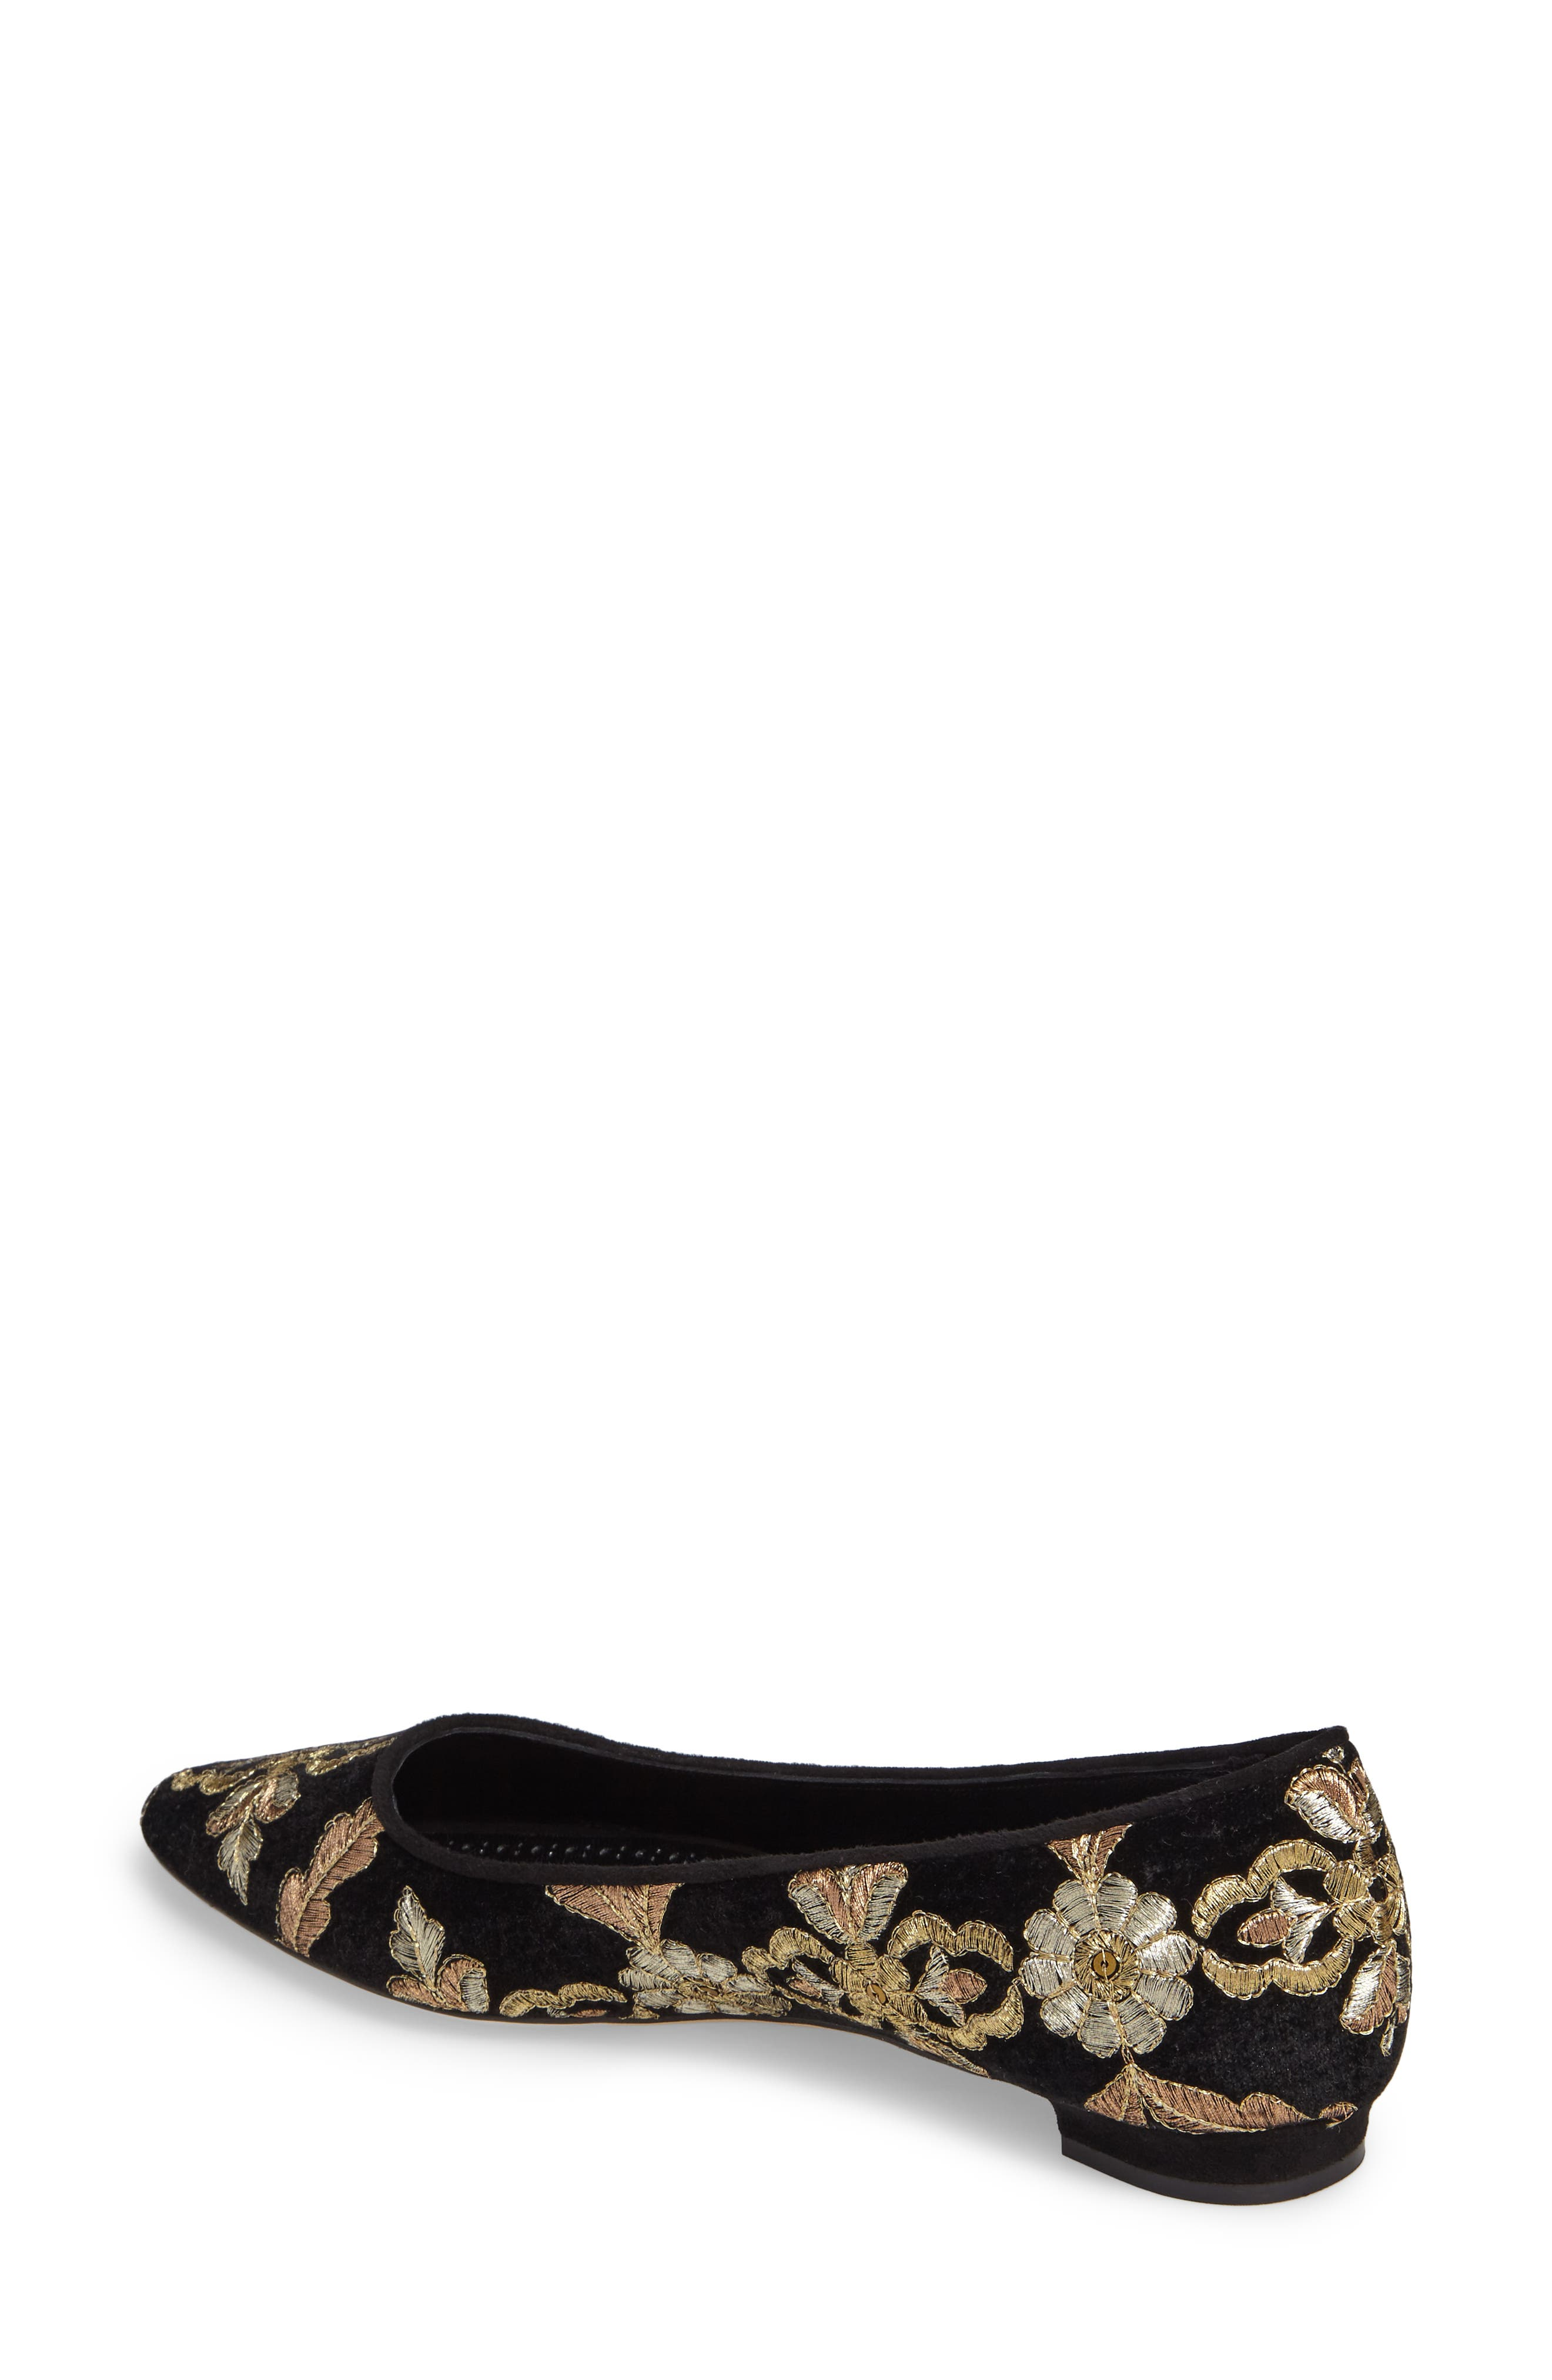 Alternate Image 2  - Manolo Blahnik Tittermo Floral Embroidered Ballet Flat (Women)